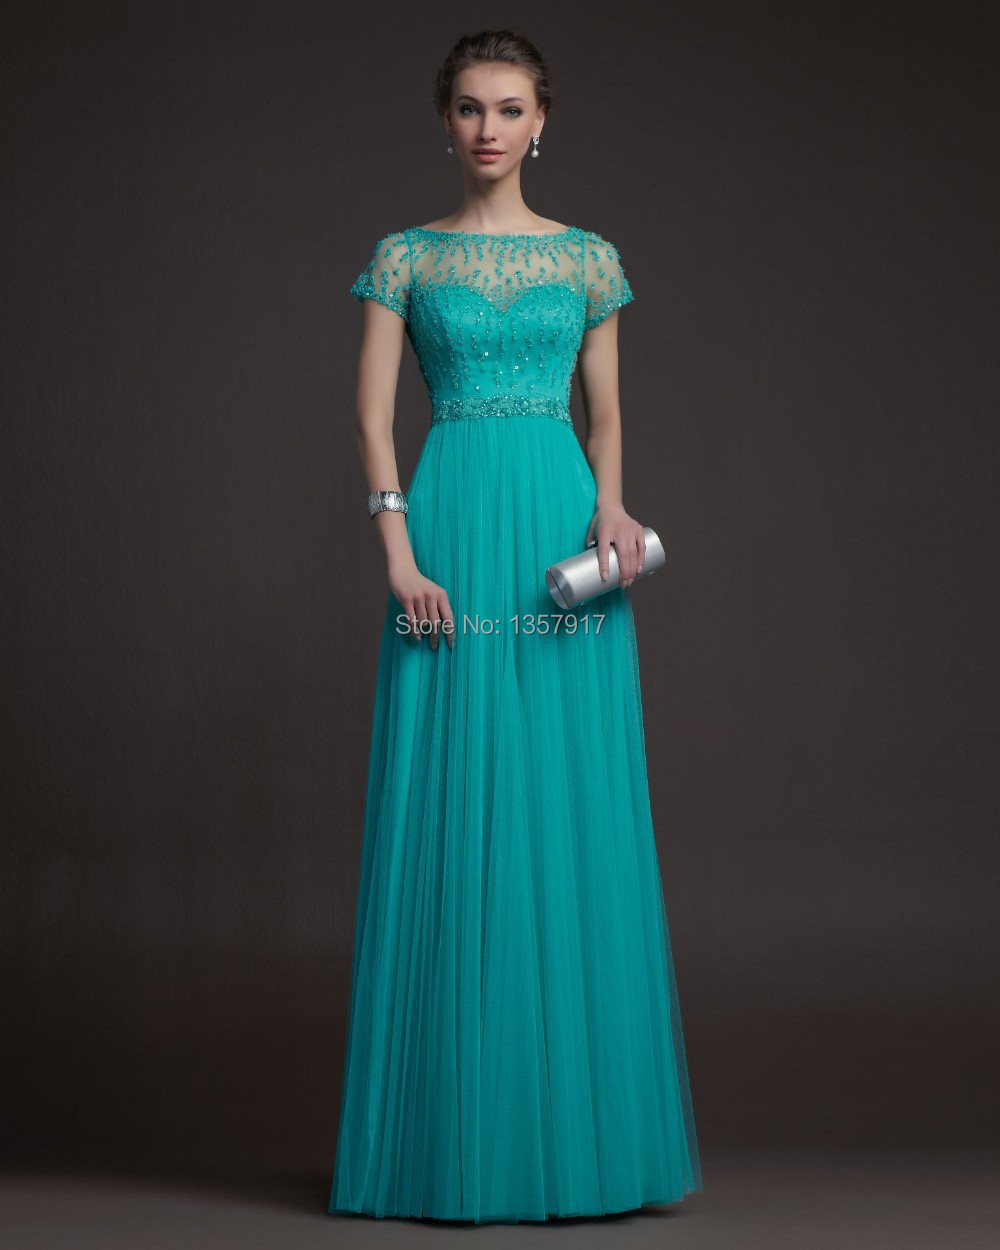 Compare Prices on Teal Gowns Women- Online Shopping/Buy Low Price ...